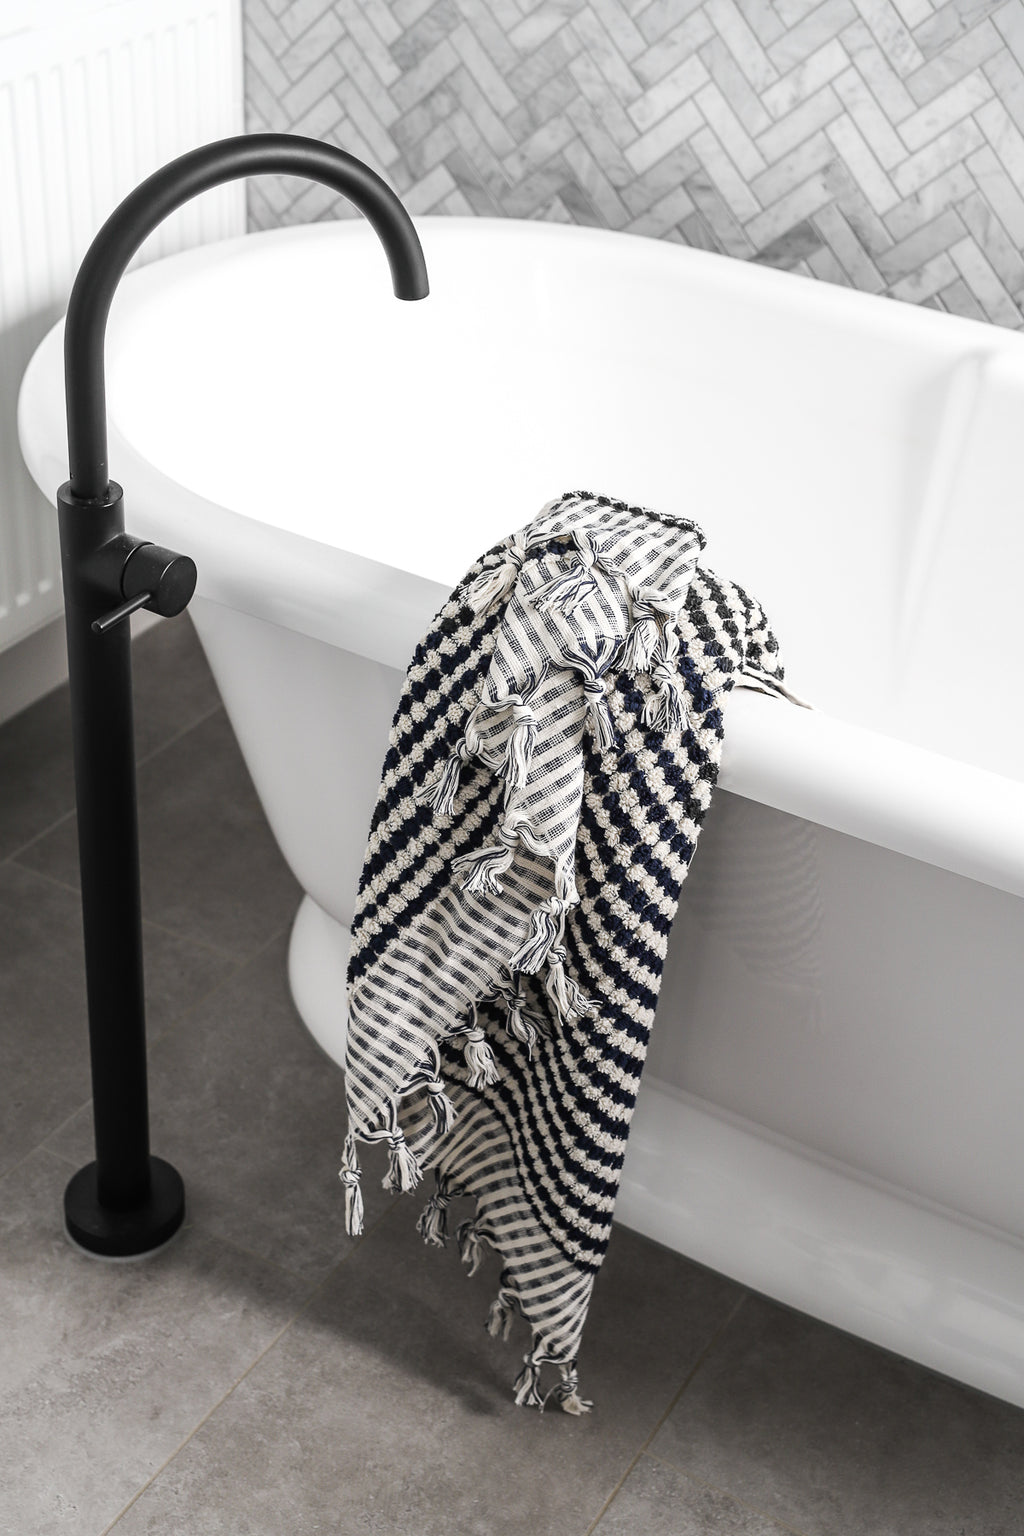 Pom Pom Bath Towel - Black and White